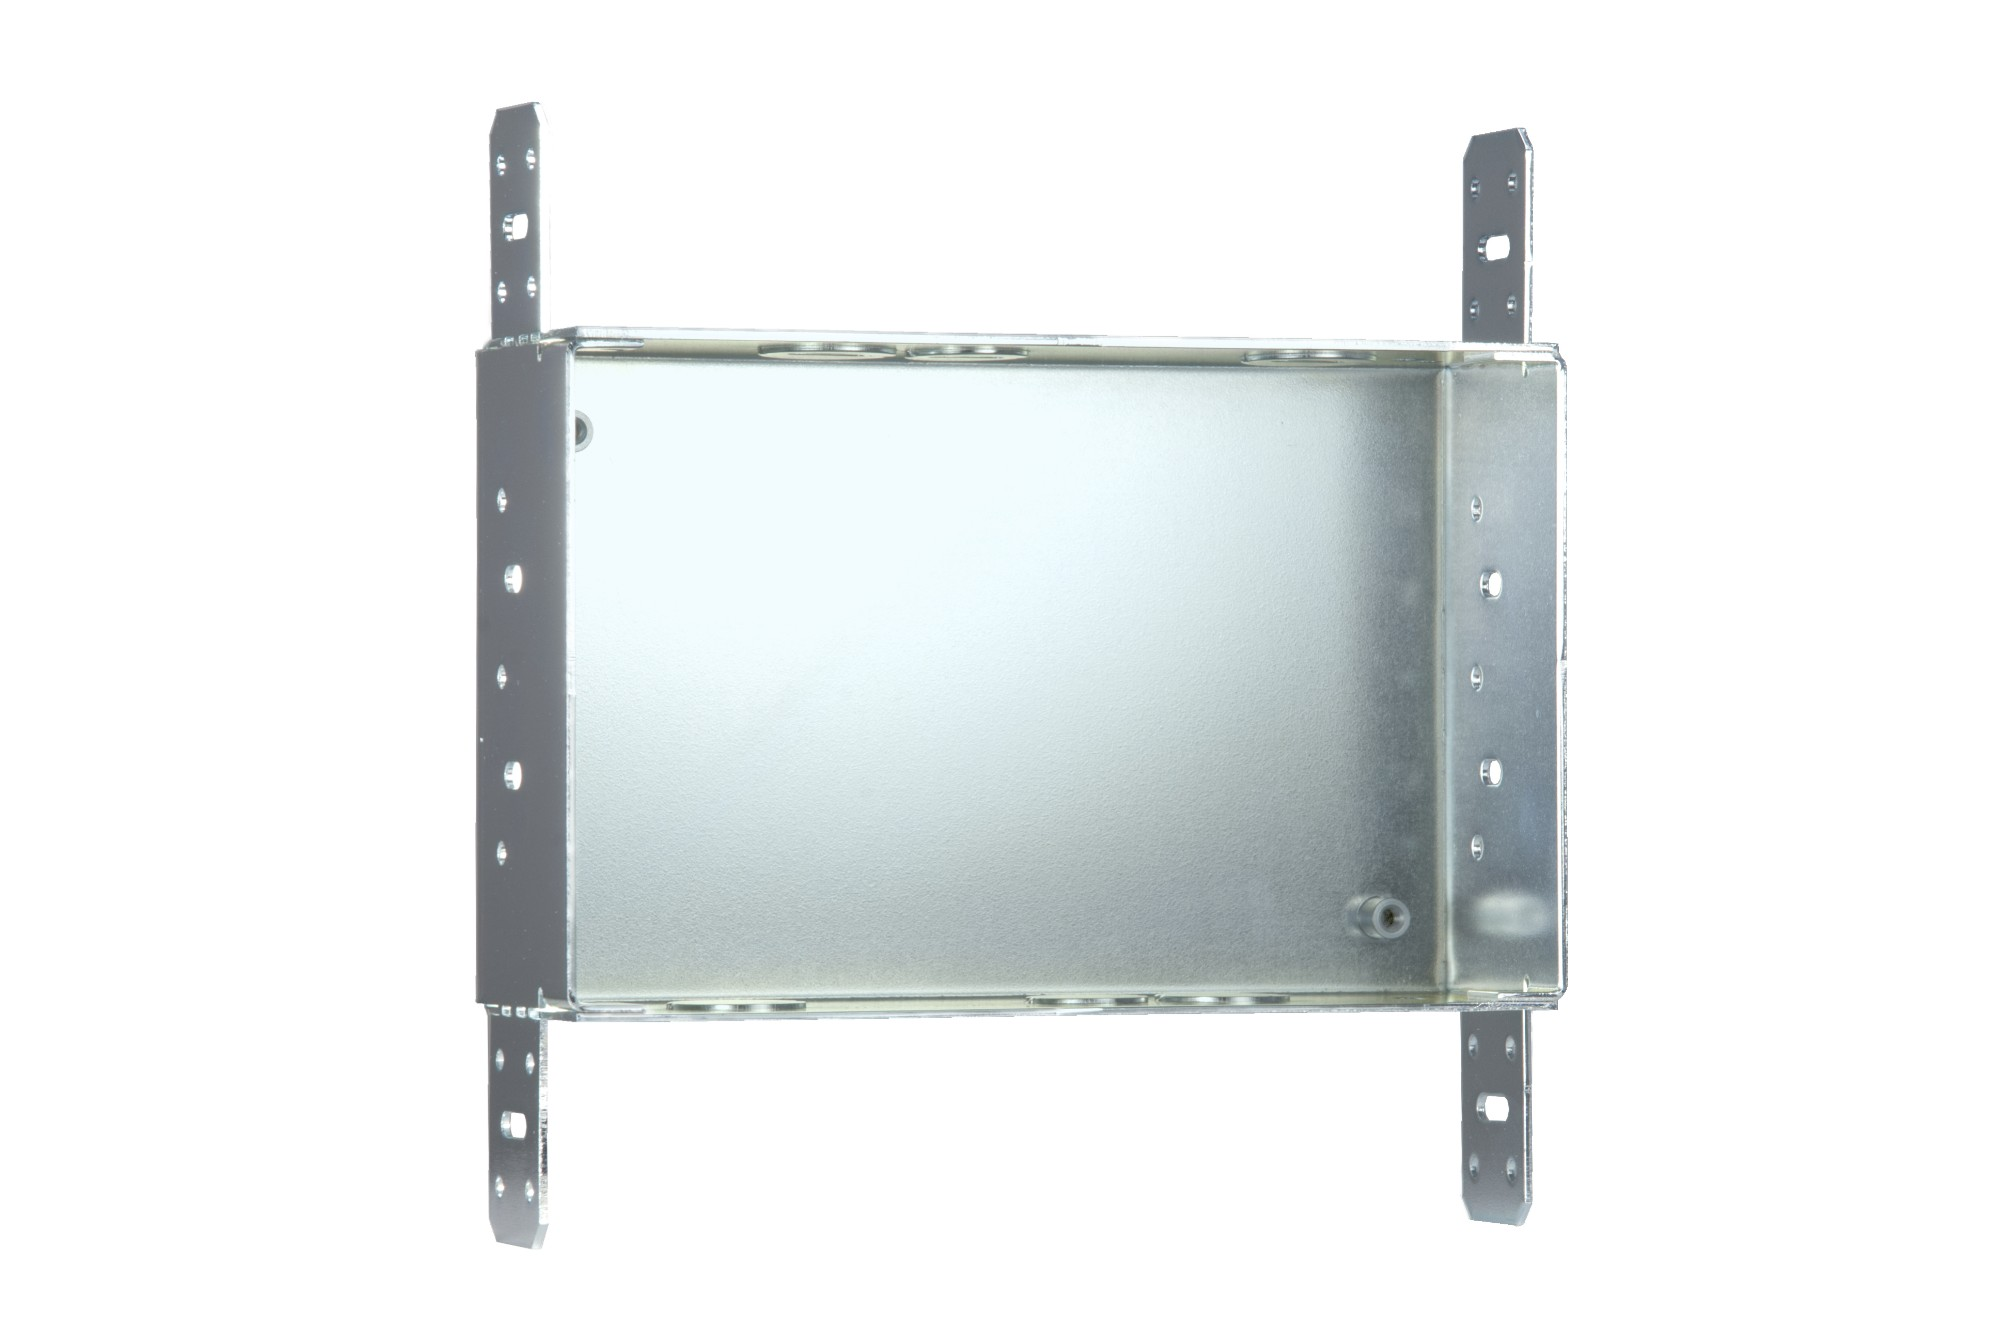 Rough-in Box And Cover Plate For The 7 & Quot Wall Mount Modero X Series Touch Panels